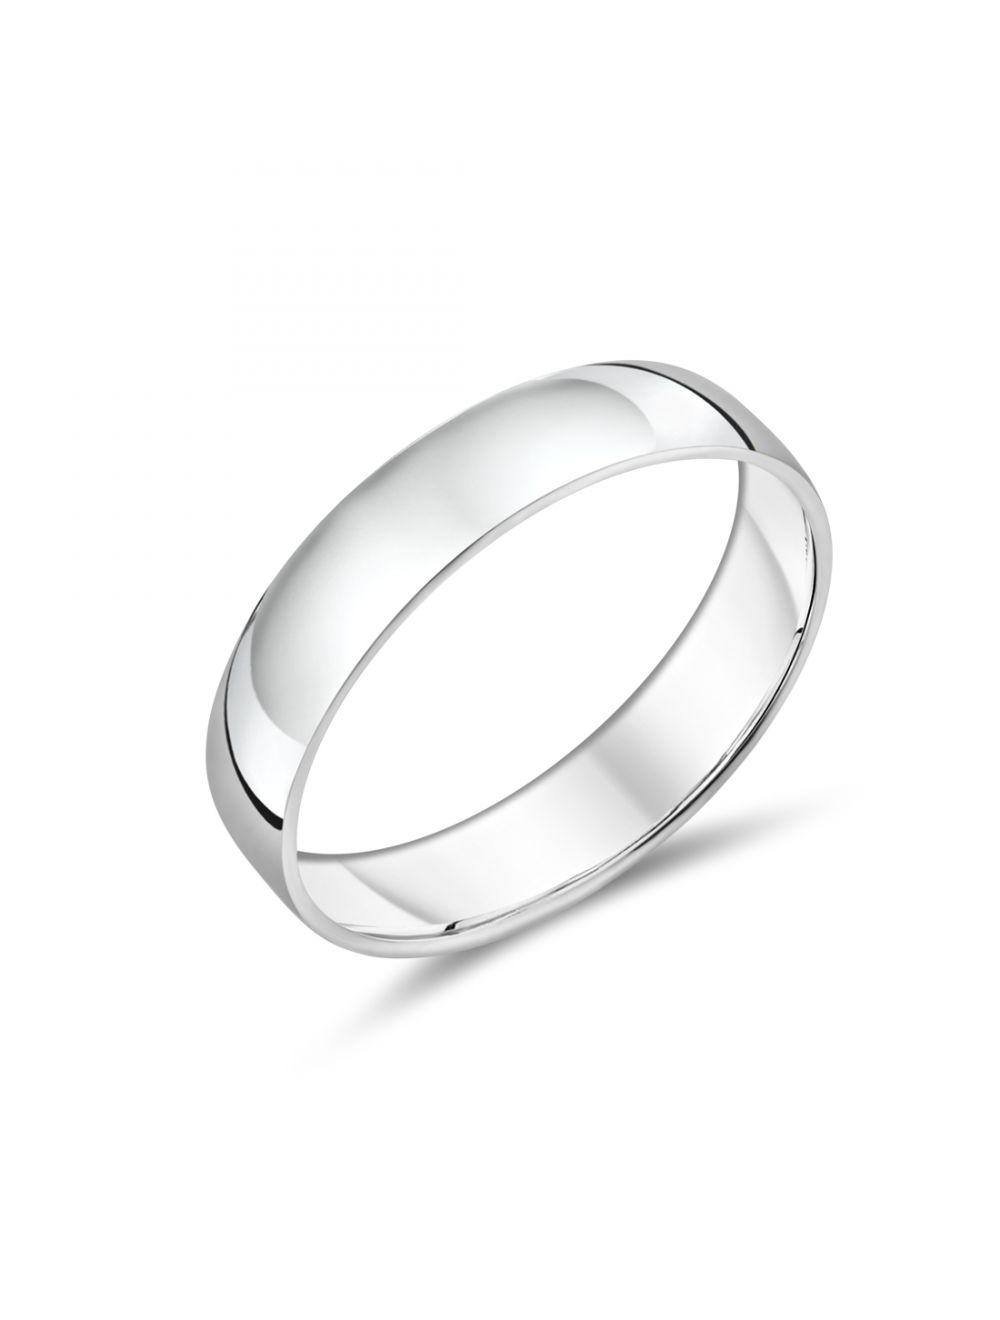 9ct White Gold Simple Gents Wedding Band | Ryan Thomas Jewellers